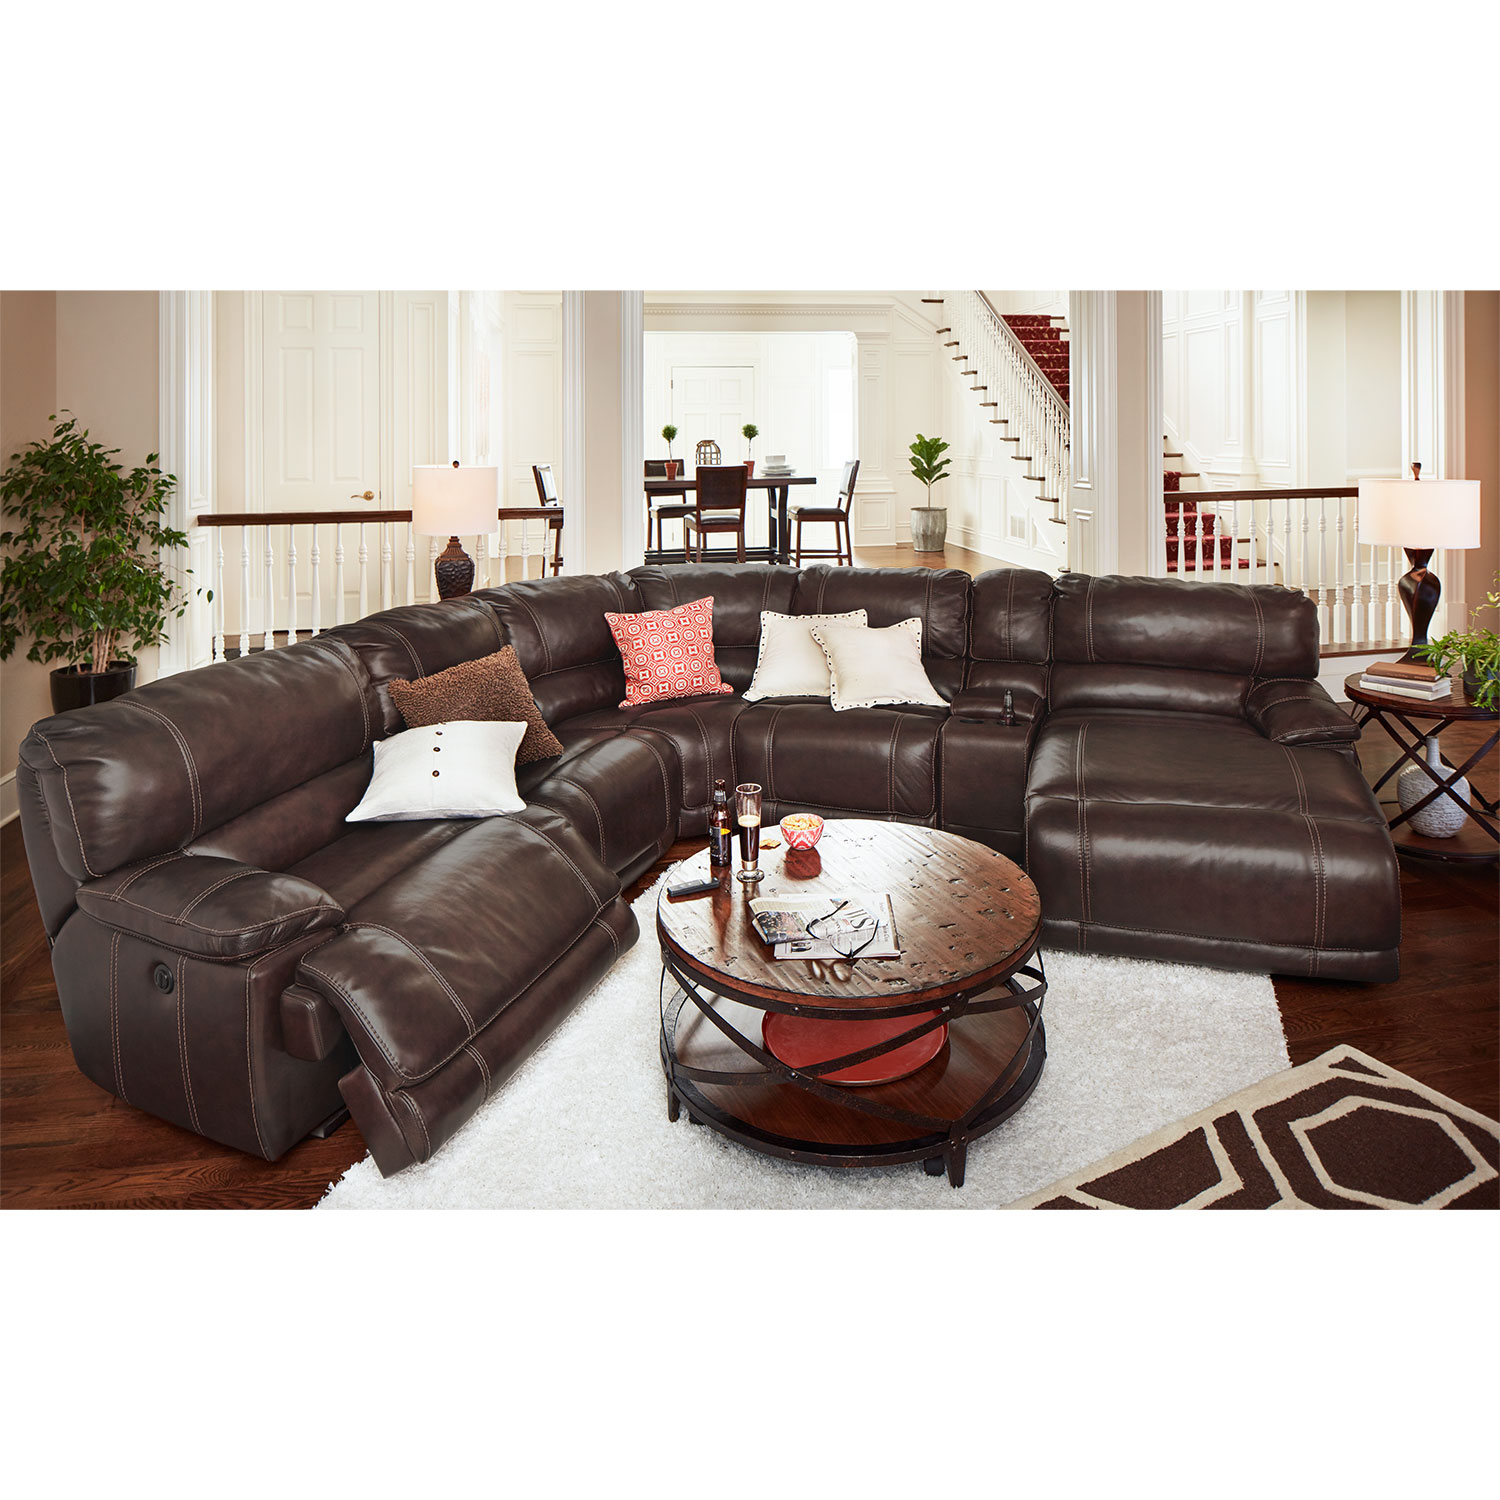 St. Malo 6-Piece Power Reclining Sectional with Right-Facing Chaise - Brown by One80  sc 1 st  Value City Furniture : reclining sectional with chaise - islam-shia.org